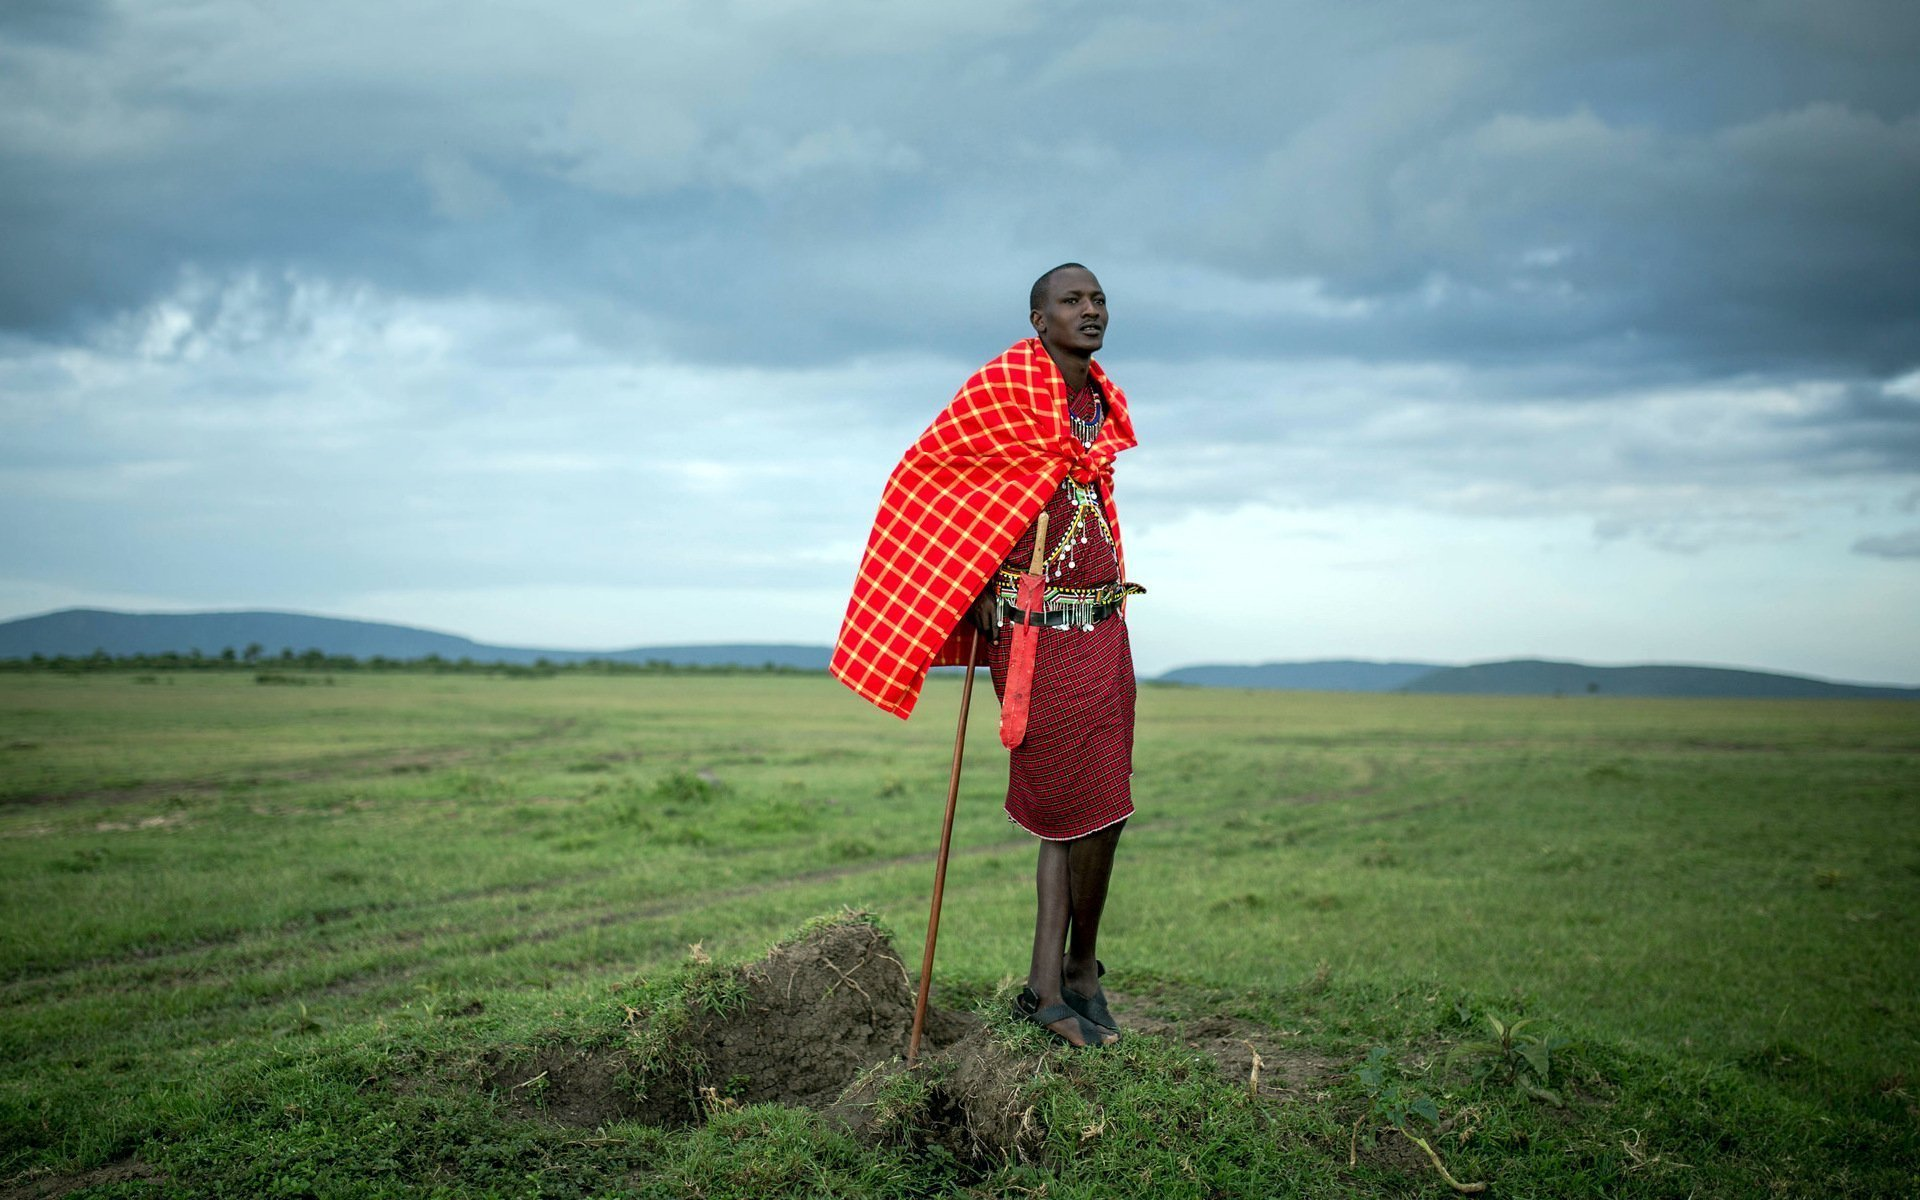 Some scholars believe the Maasai are the living remnants of Egyptian civilisation.